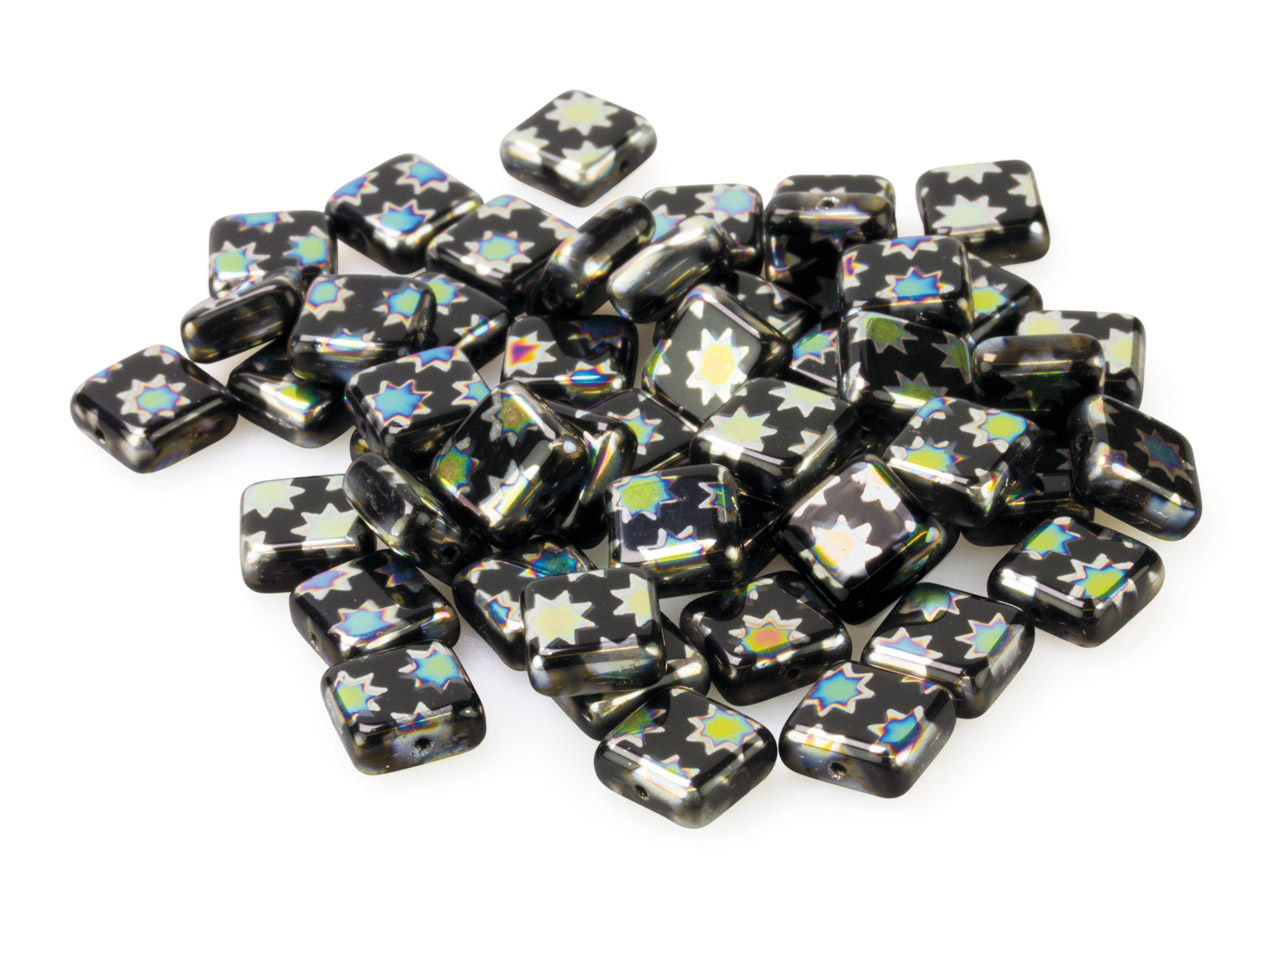 Black Glass Square Beads, Vacuum   Plated With Coloured Stars, 8mm,   Pack of 50